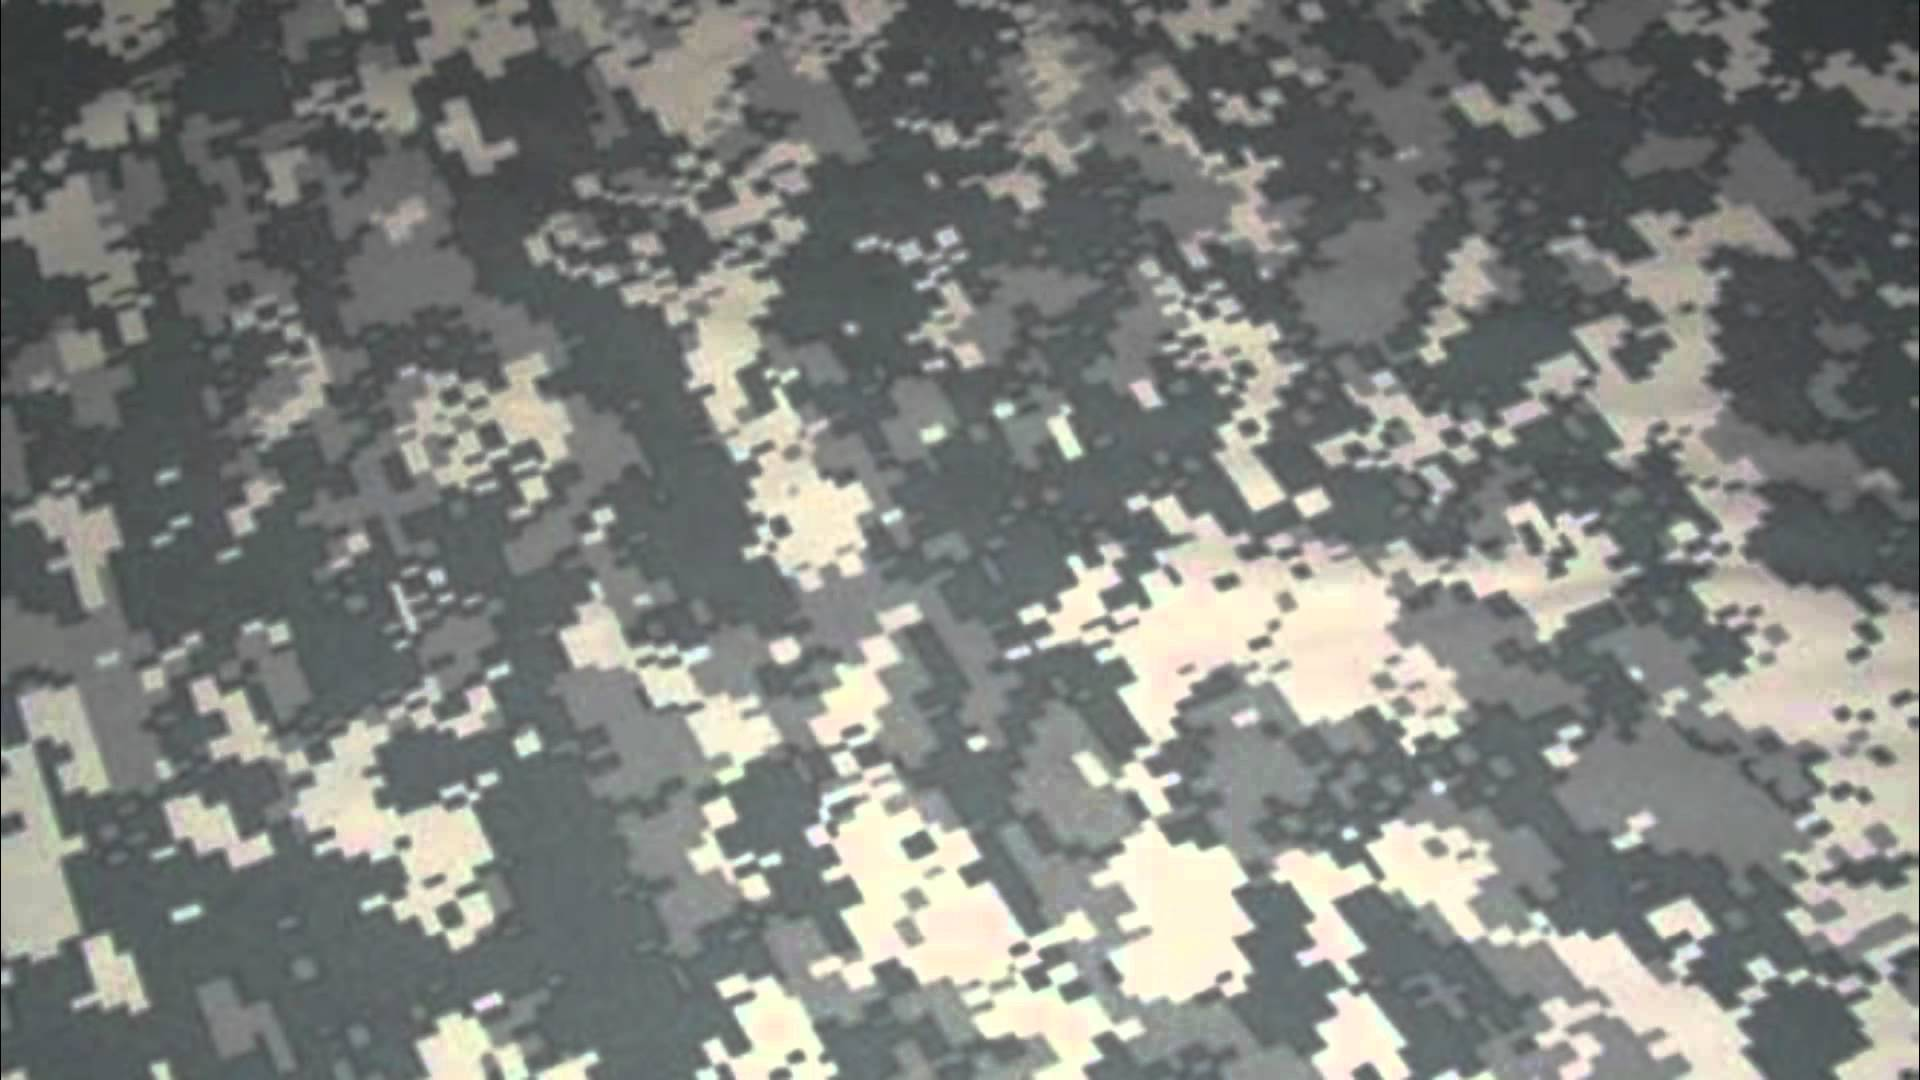 Camouflage Fabric From Green Army Fleece Cotton to Pink or Blue 1920x1080